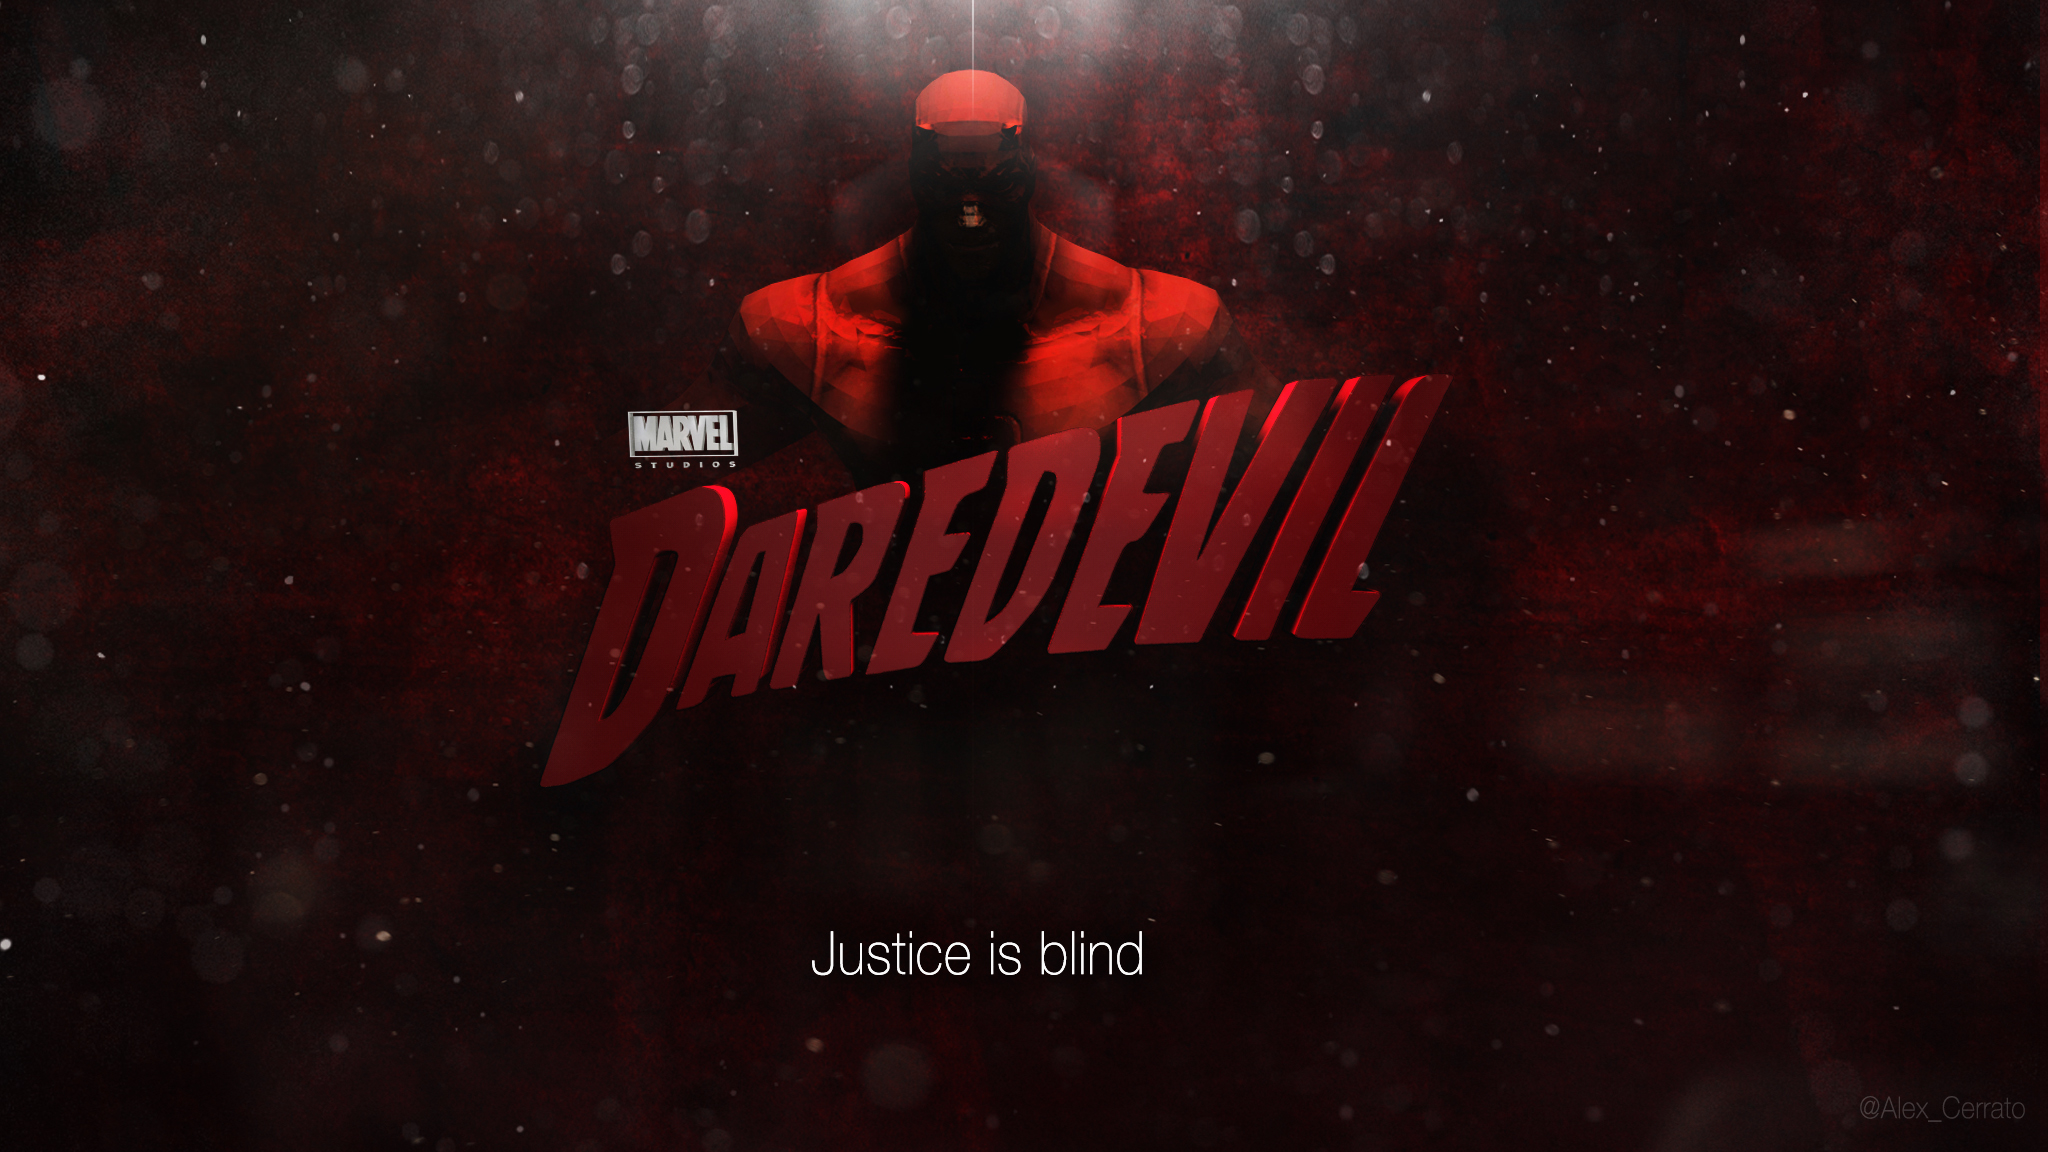 daredevil wallpaper in - photo #34